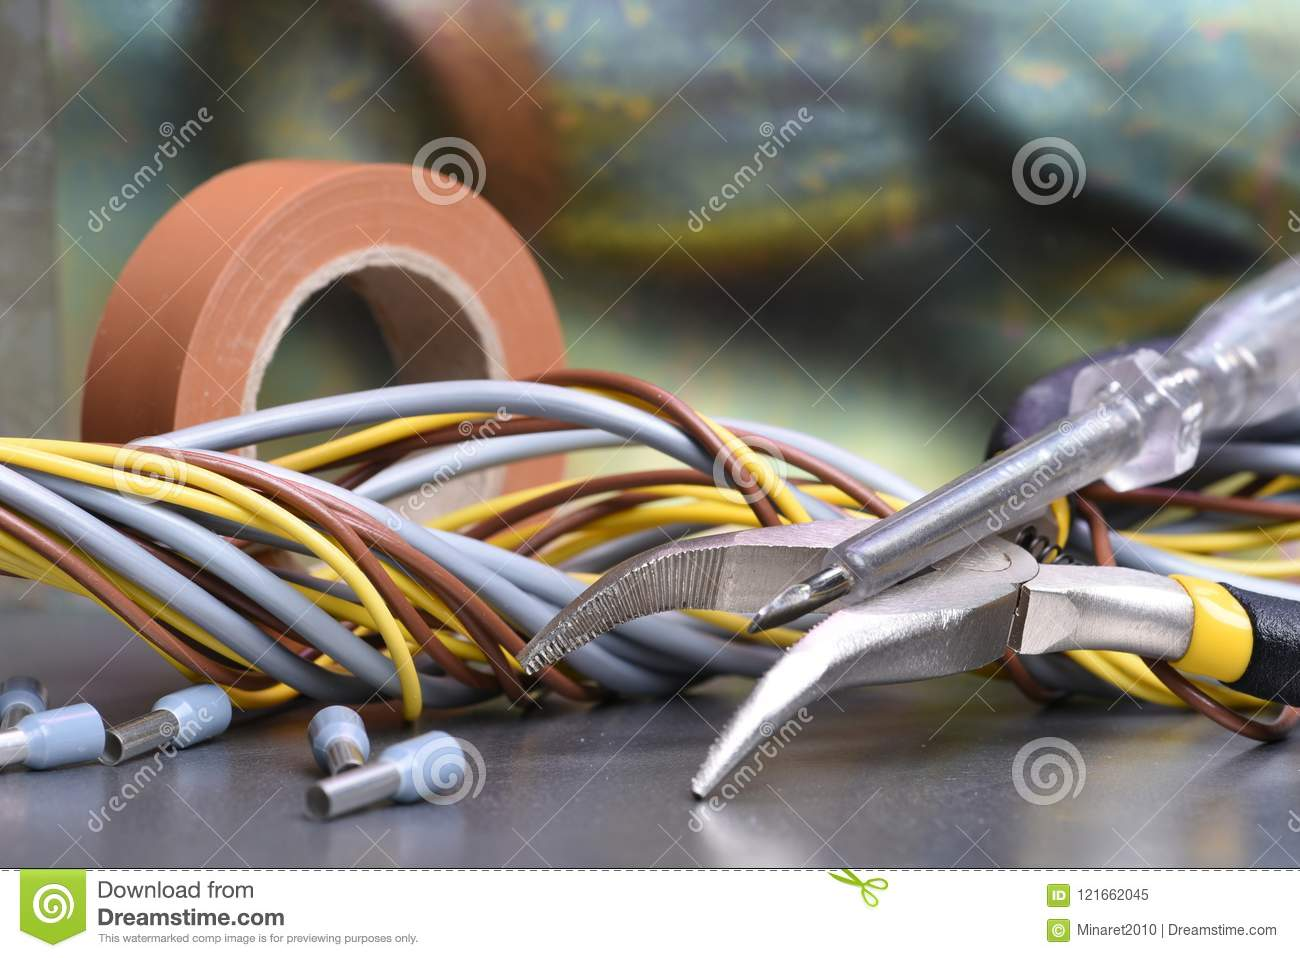 Stupendous Electrical Hand Tools And Accessories Stock Image Image Of Wiring Cloud Hisonuggs Outletorg